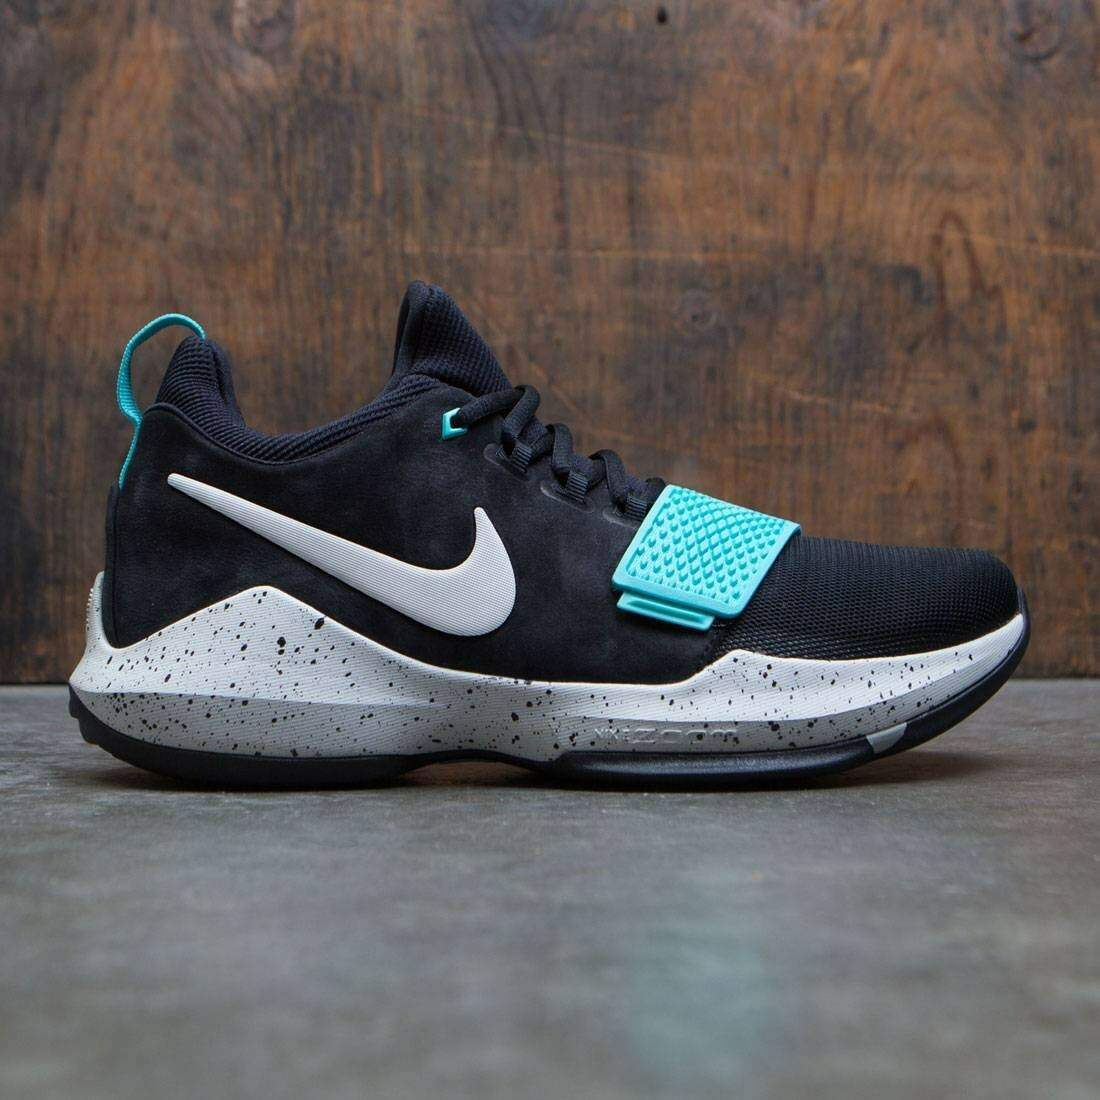 PG 1 Black / Light Bone / Light Aqua Masculino